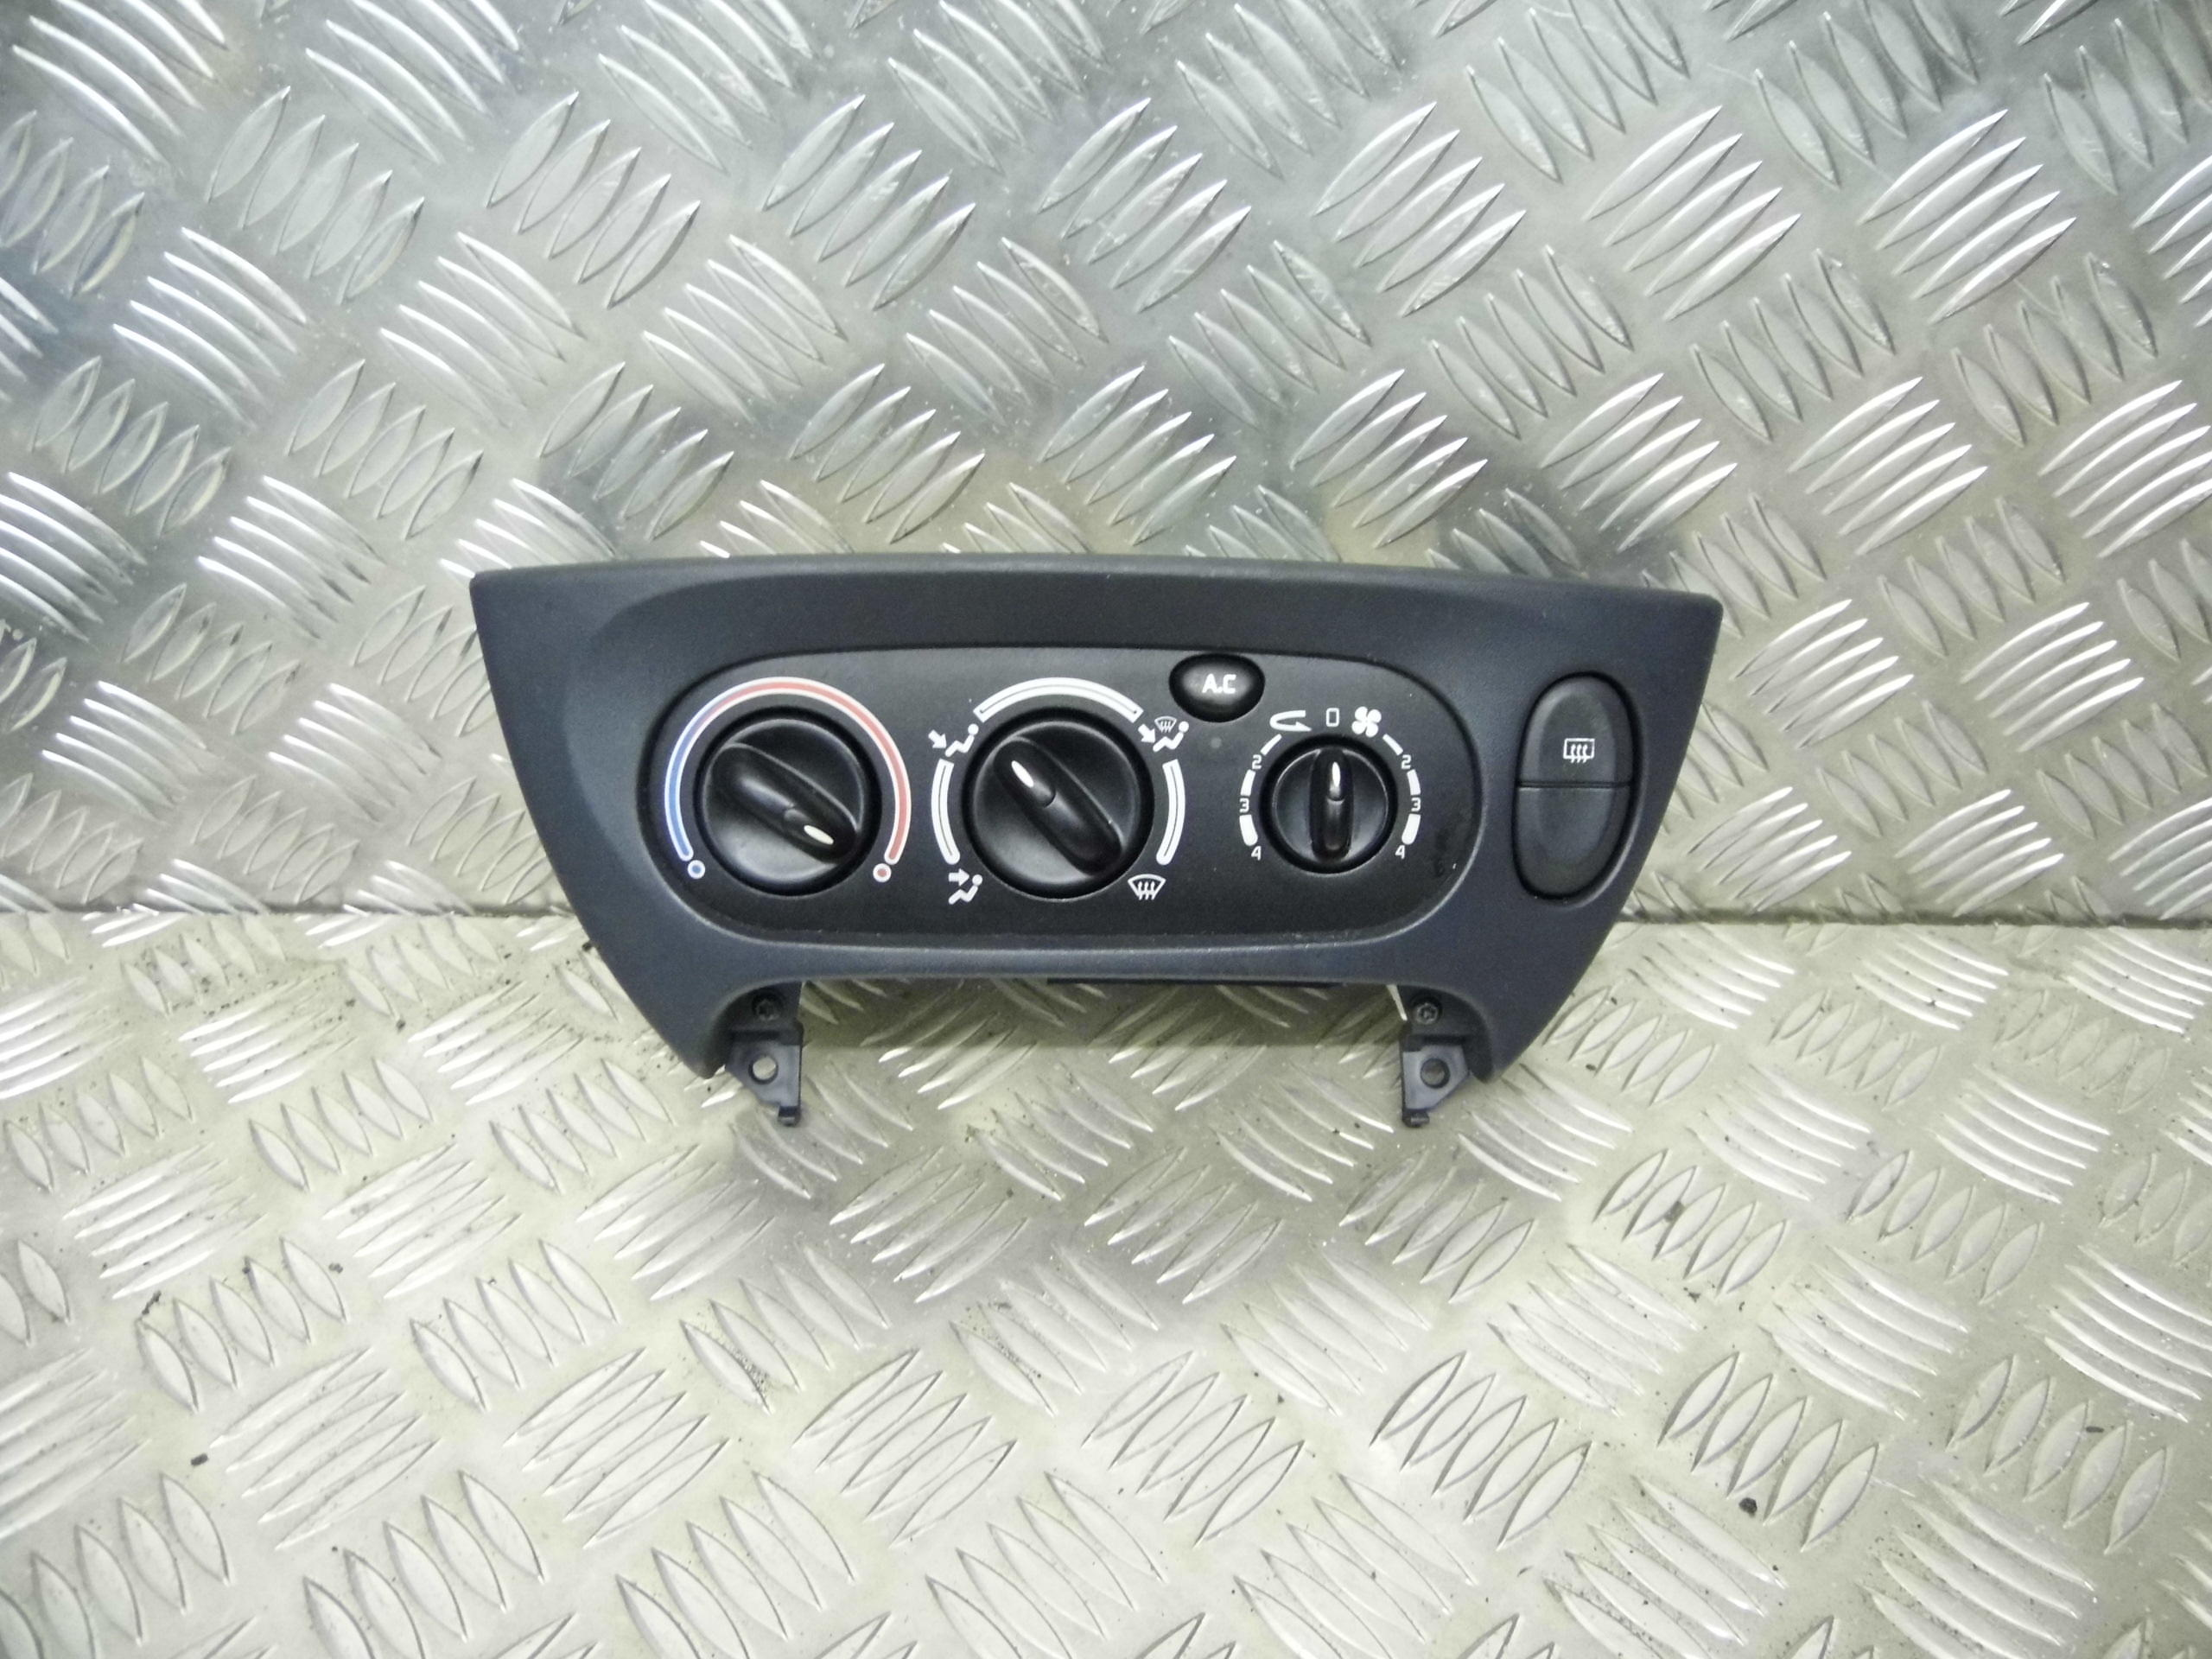 Used  renault megane coupe heater control panel